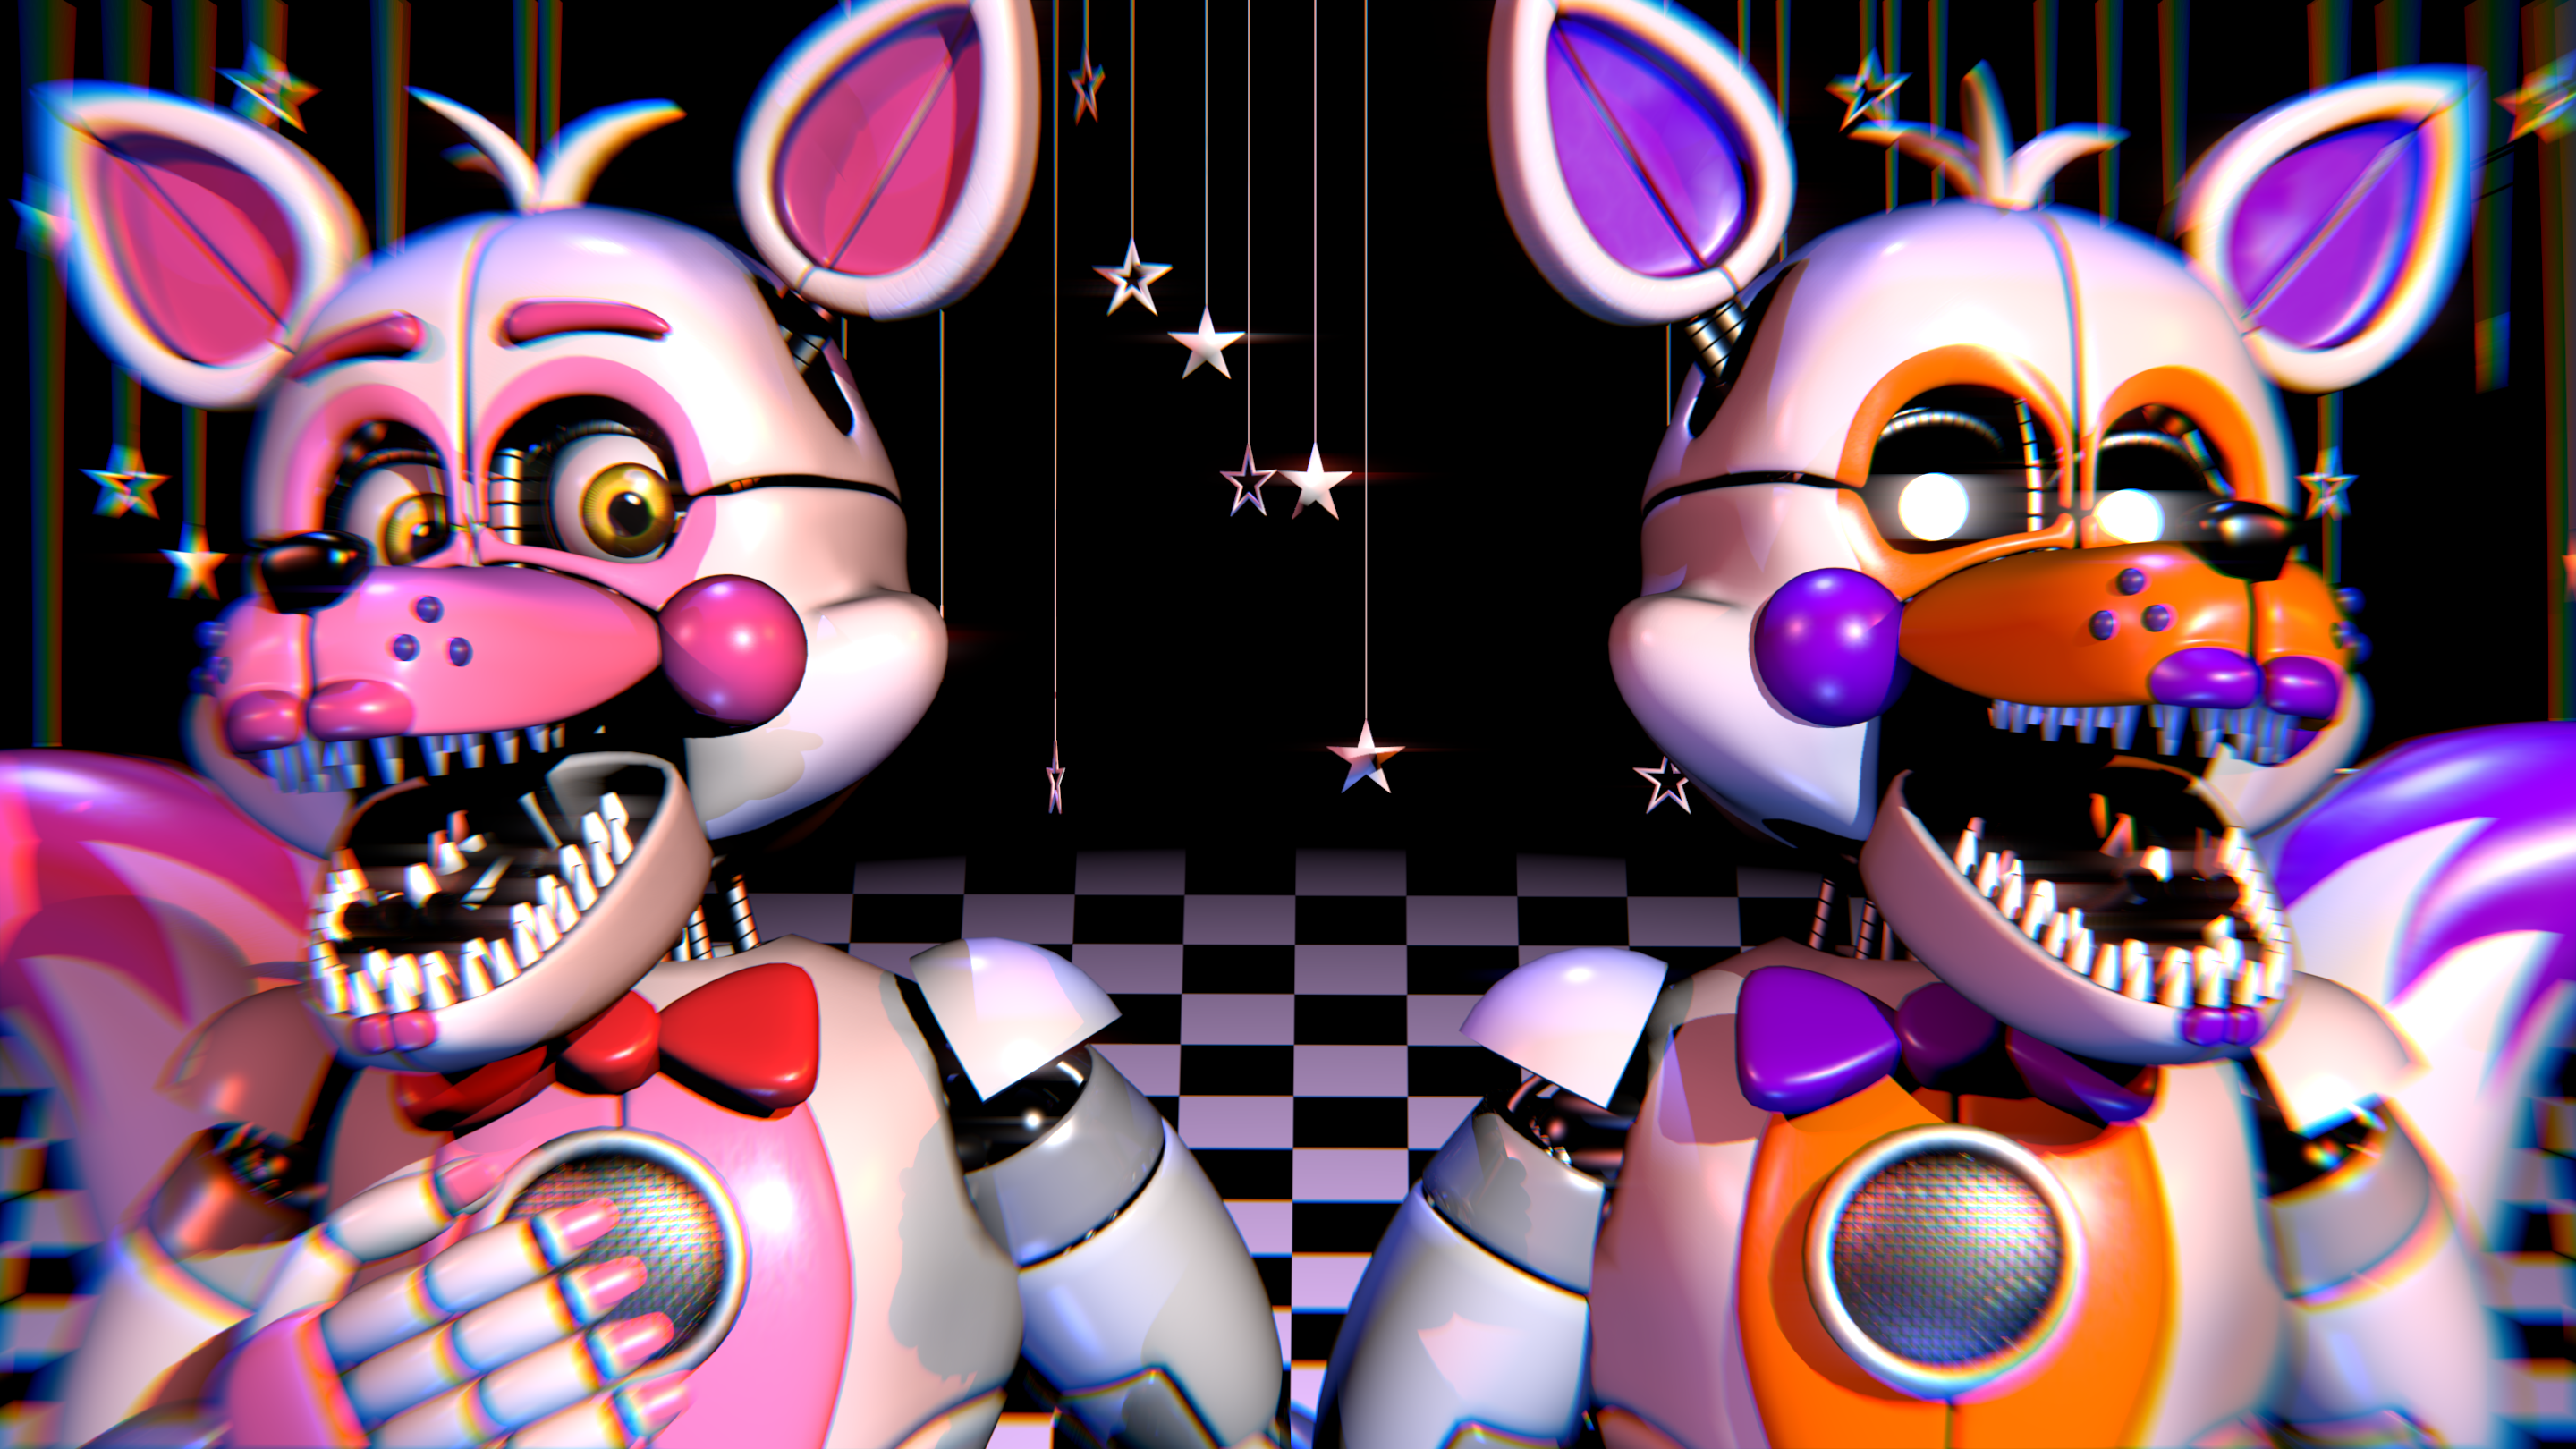 Five Nights At Freddy S Sister Location 2382981 Hd Wallpaper